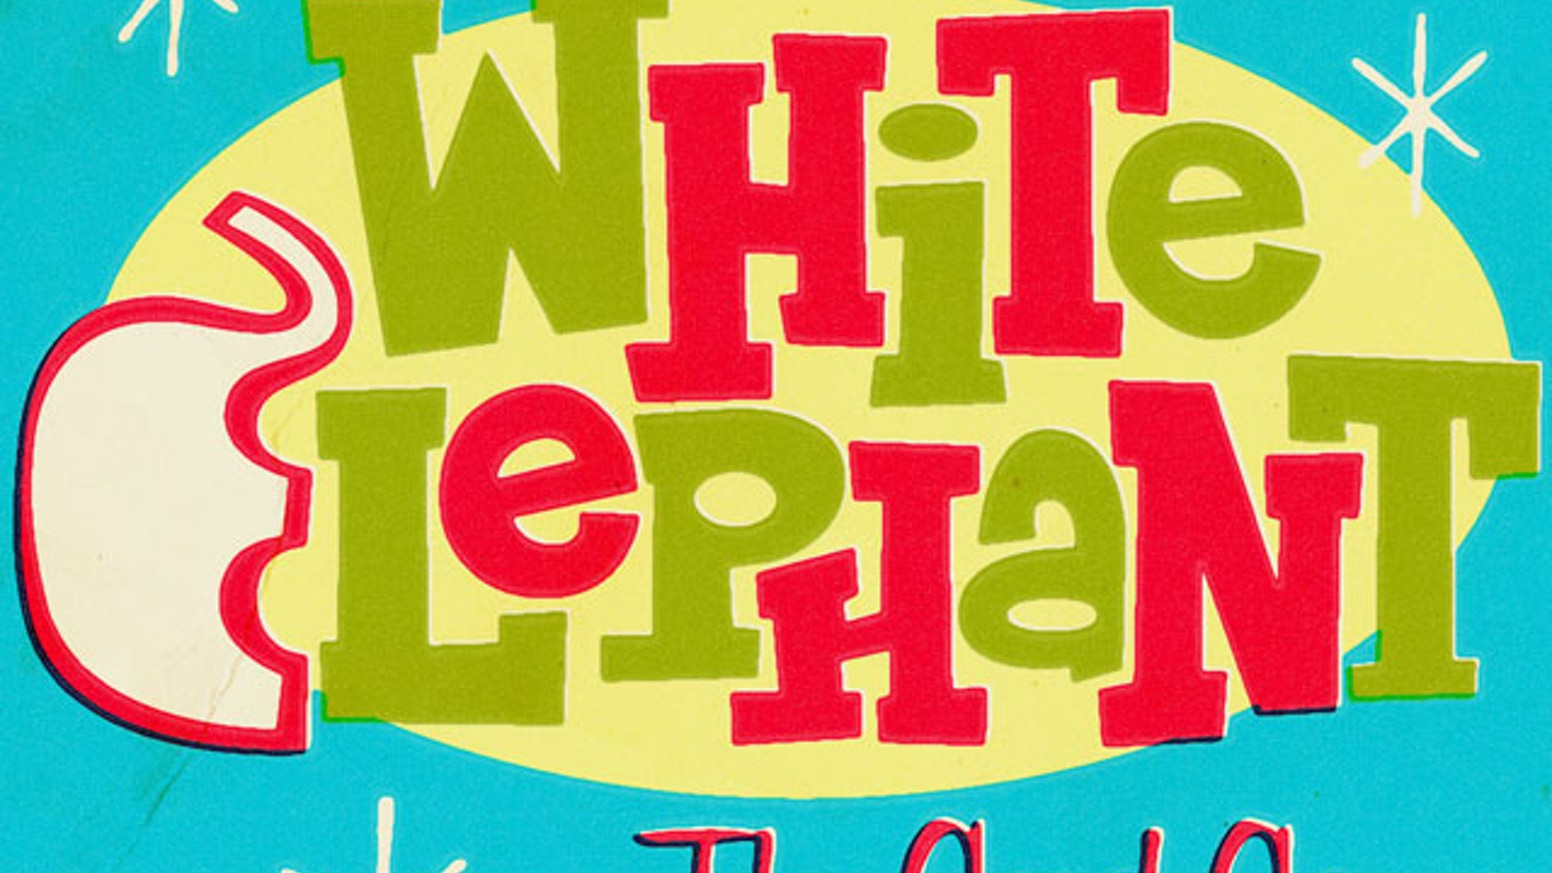 White elephant card game by brian kelley kickstarter white elephant card game solutioingenieria Choice Image